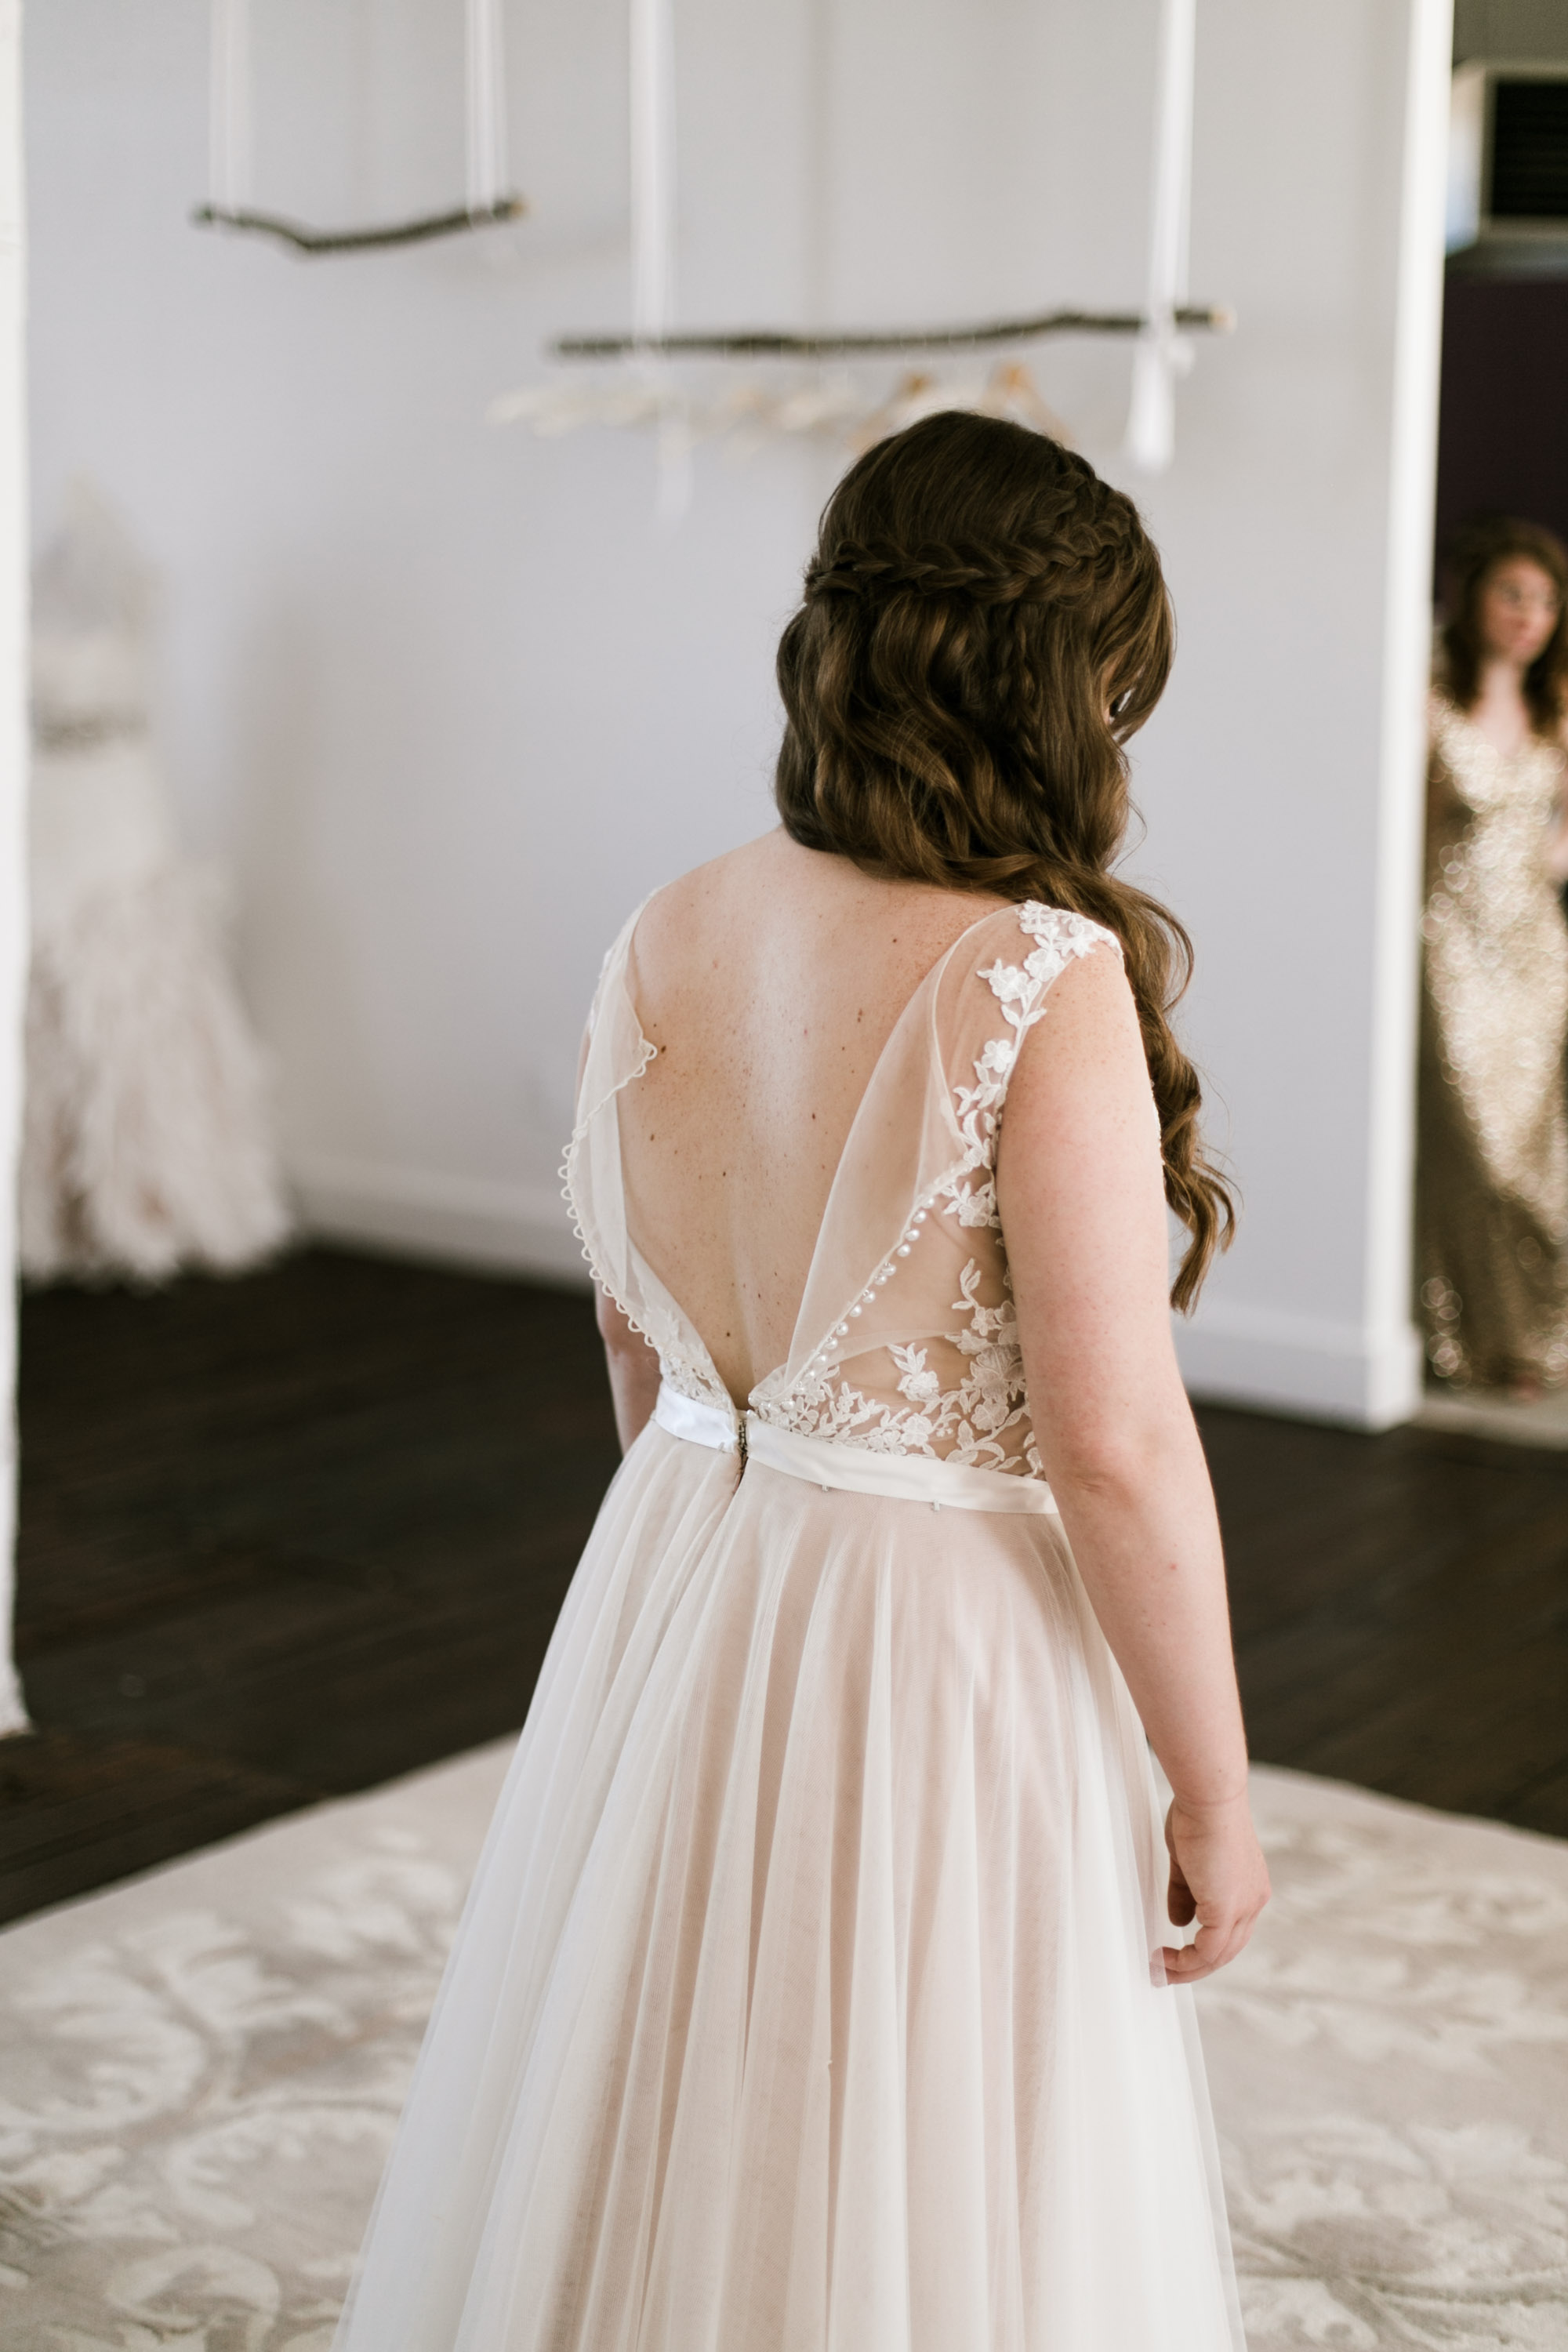 Bride getting into wedding dress at the NP Event Space, photography by Britt DeZeeuw.